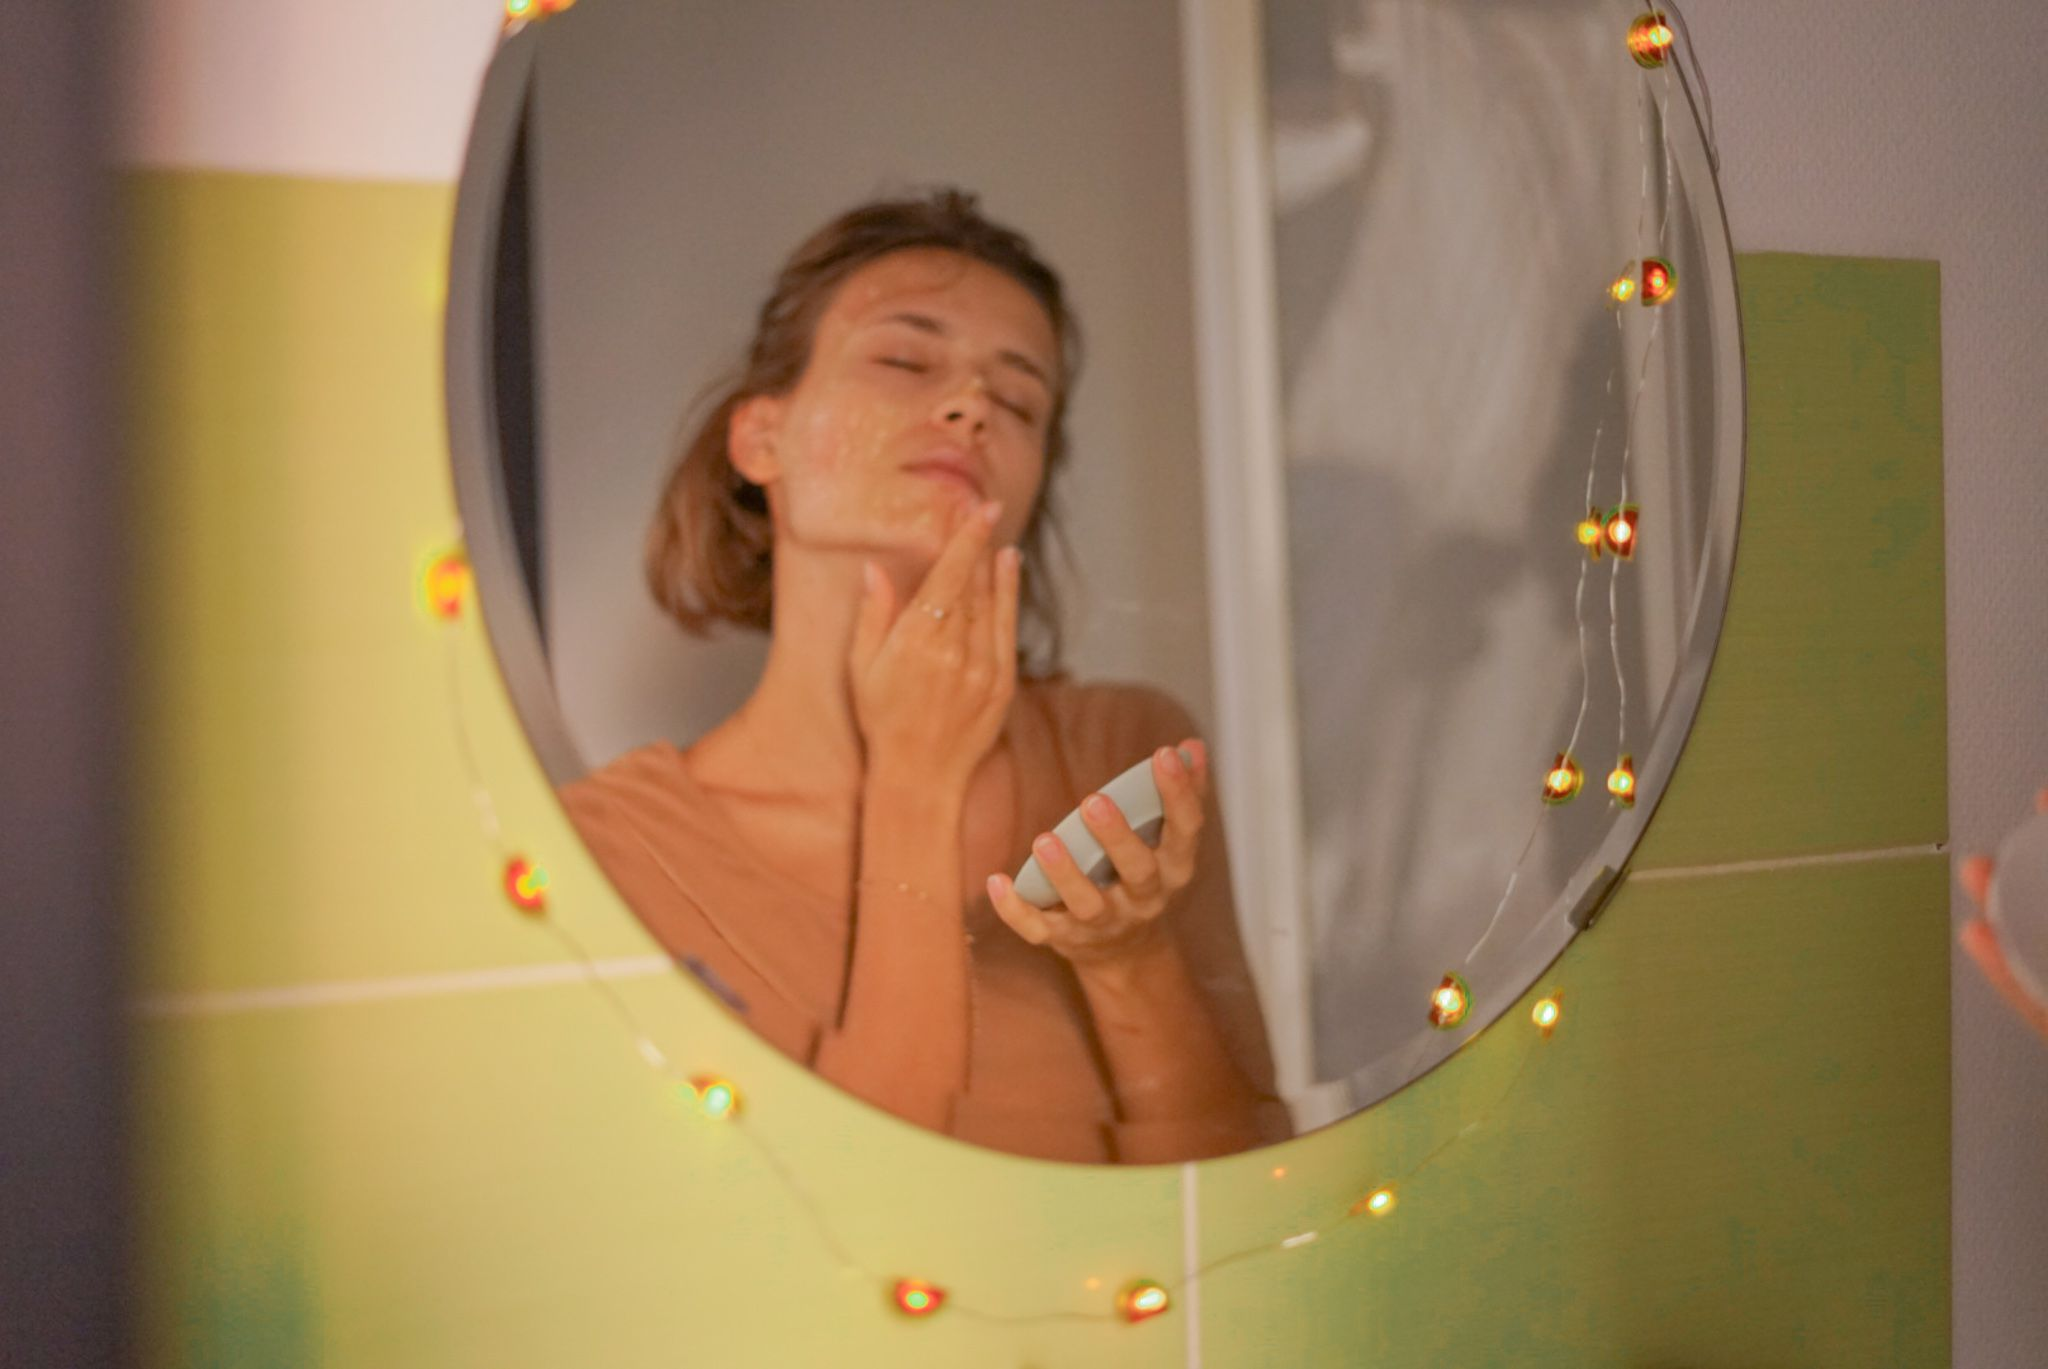 reflection in mirror of woman in bathroom rubbing honey on face for natural beauty treatment